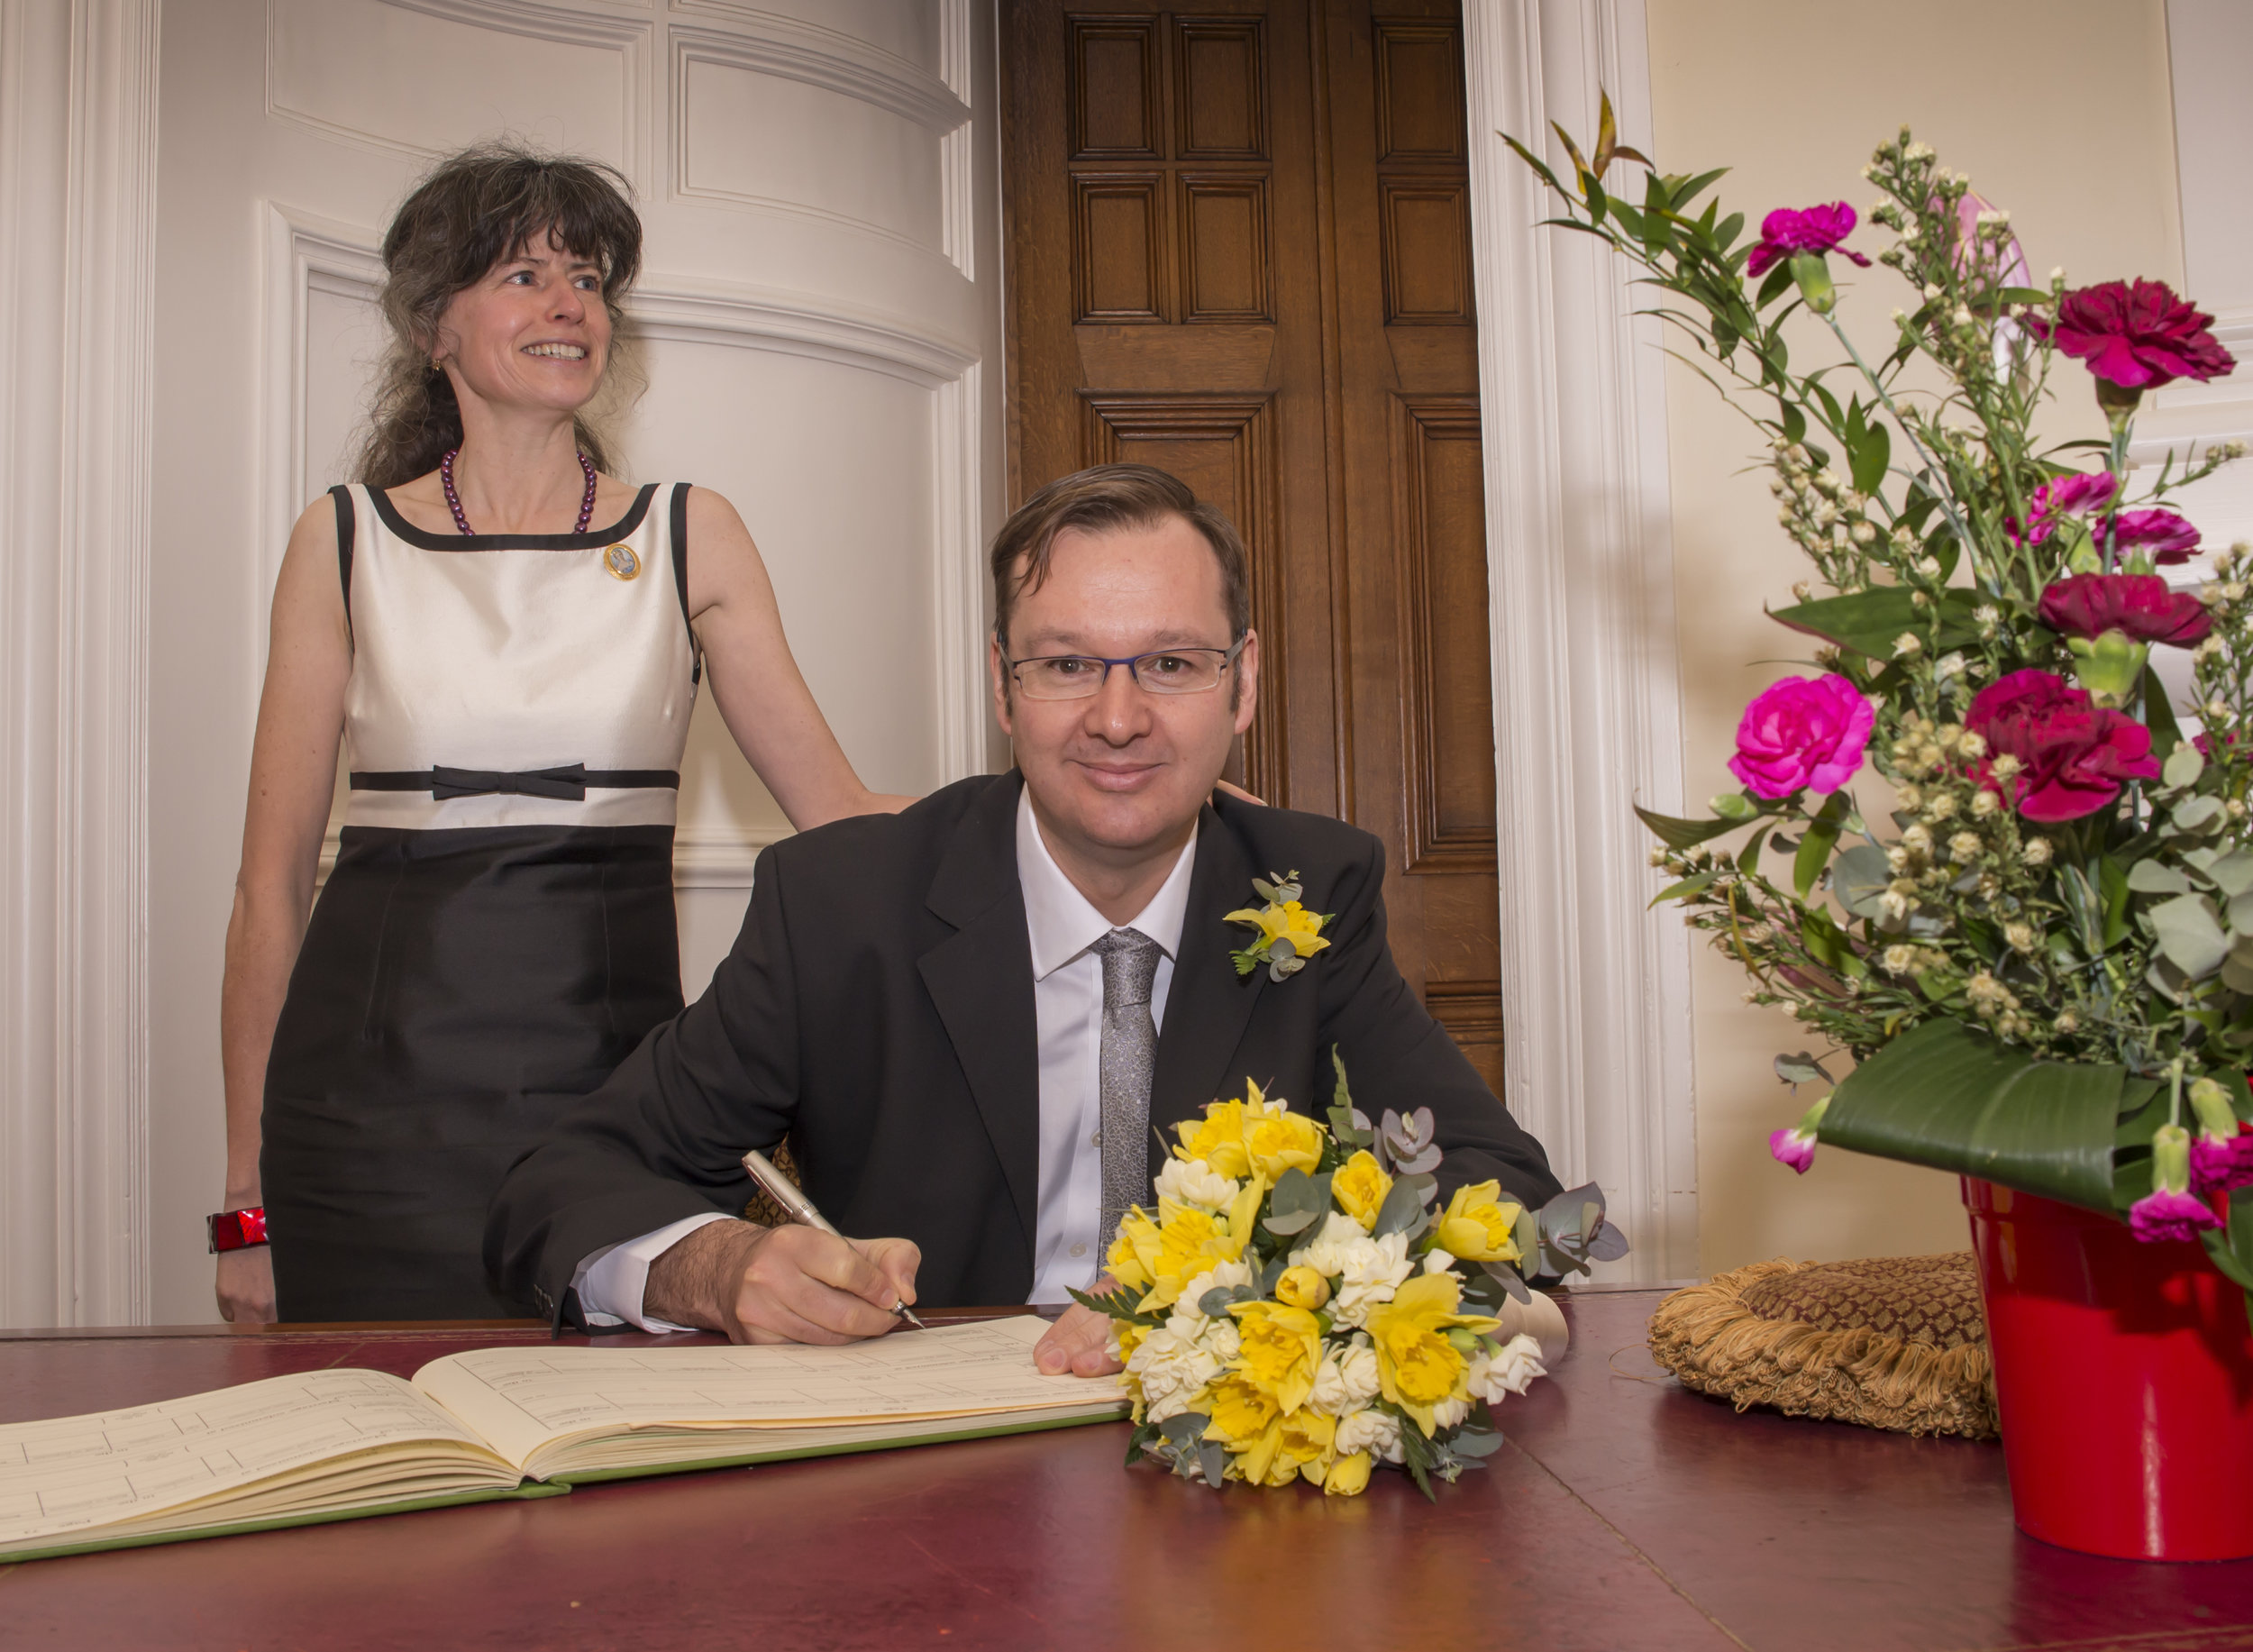 Wedding Photography - Hastings, Town Hall 5